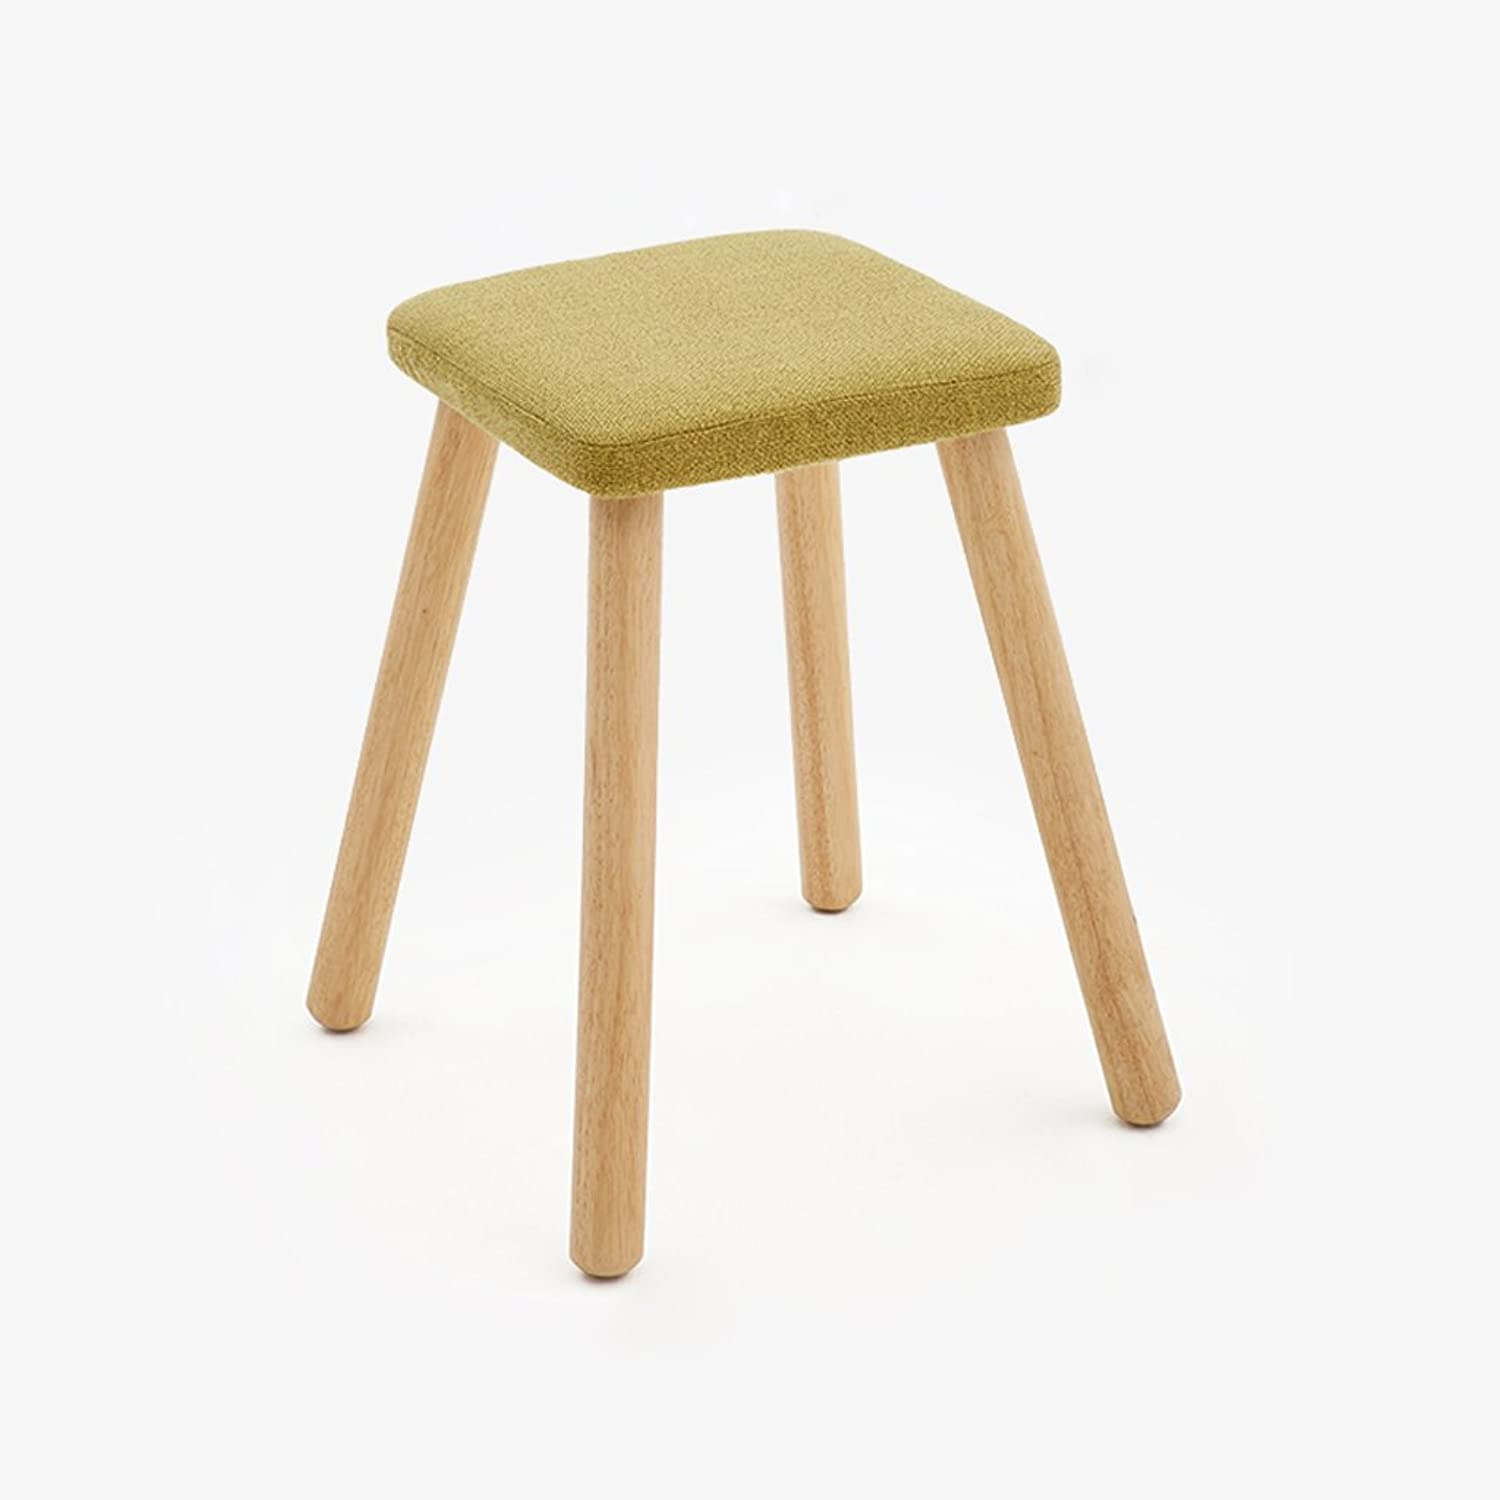 Solid Wood Square Stool Fashionable Dressing Chair Cloth Art Household Small Stool (color   Green)